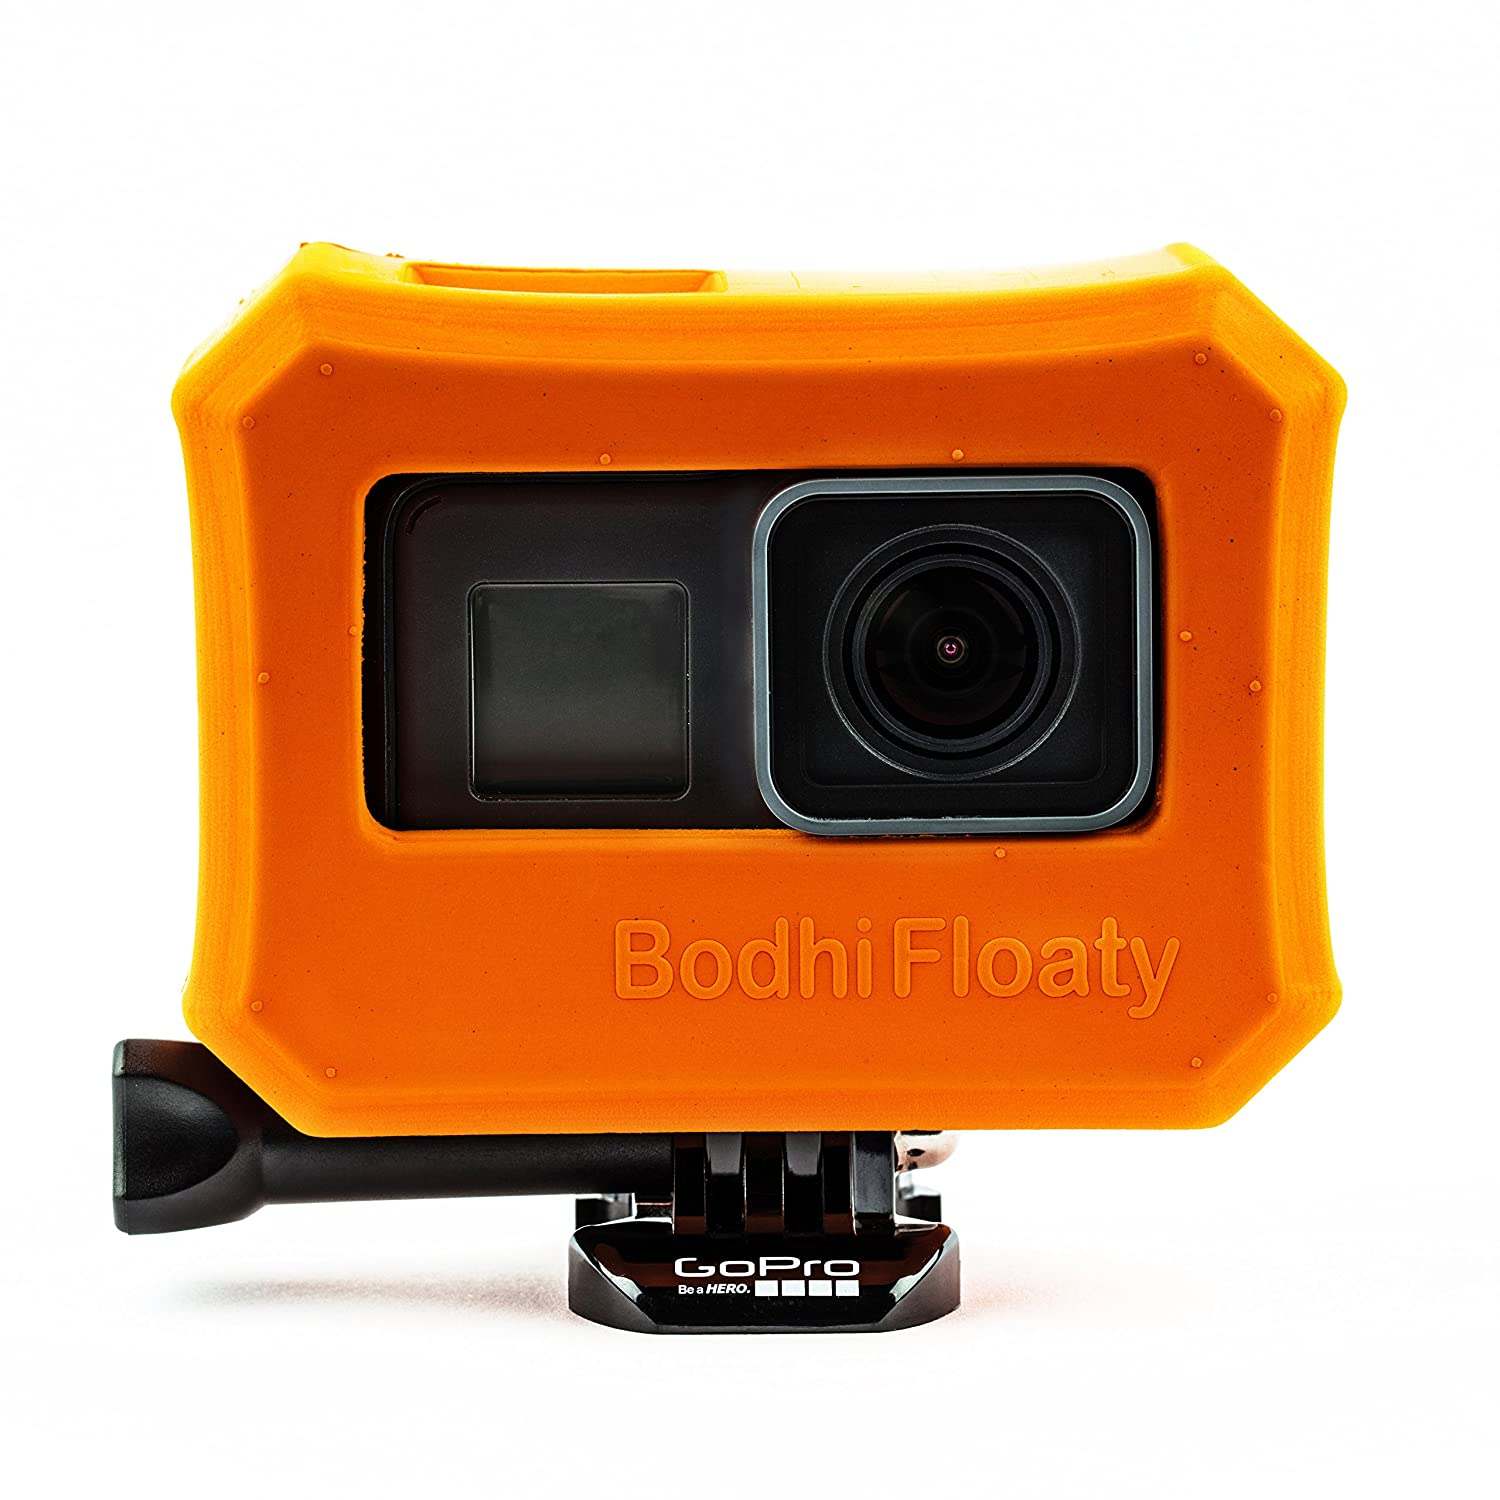 Bodhi Floaty Case, Orange for GoPro Hero 7, Hero 6, Hero 5 Black and Hero 2018